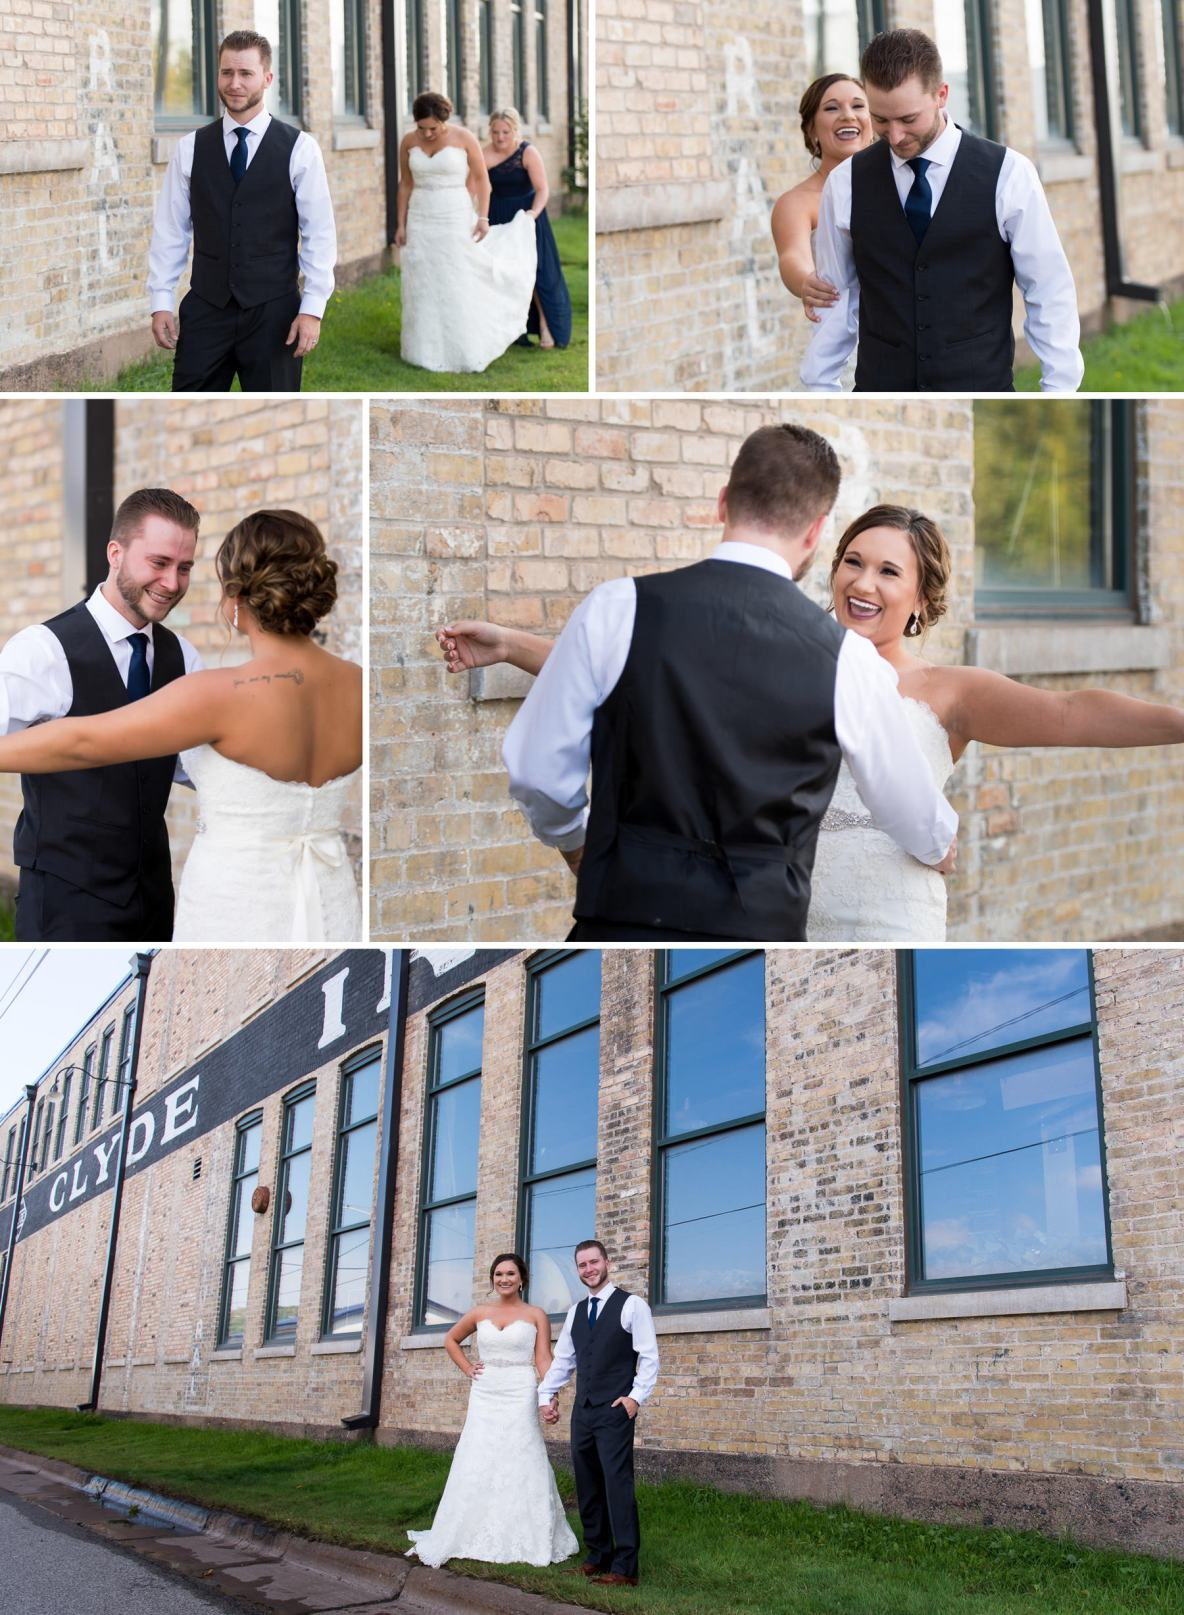 Photos of the bride and groom's first look.